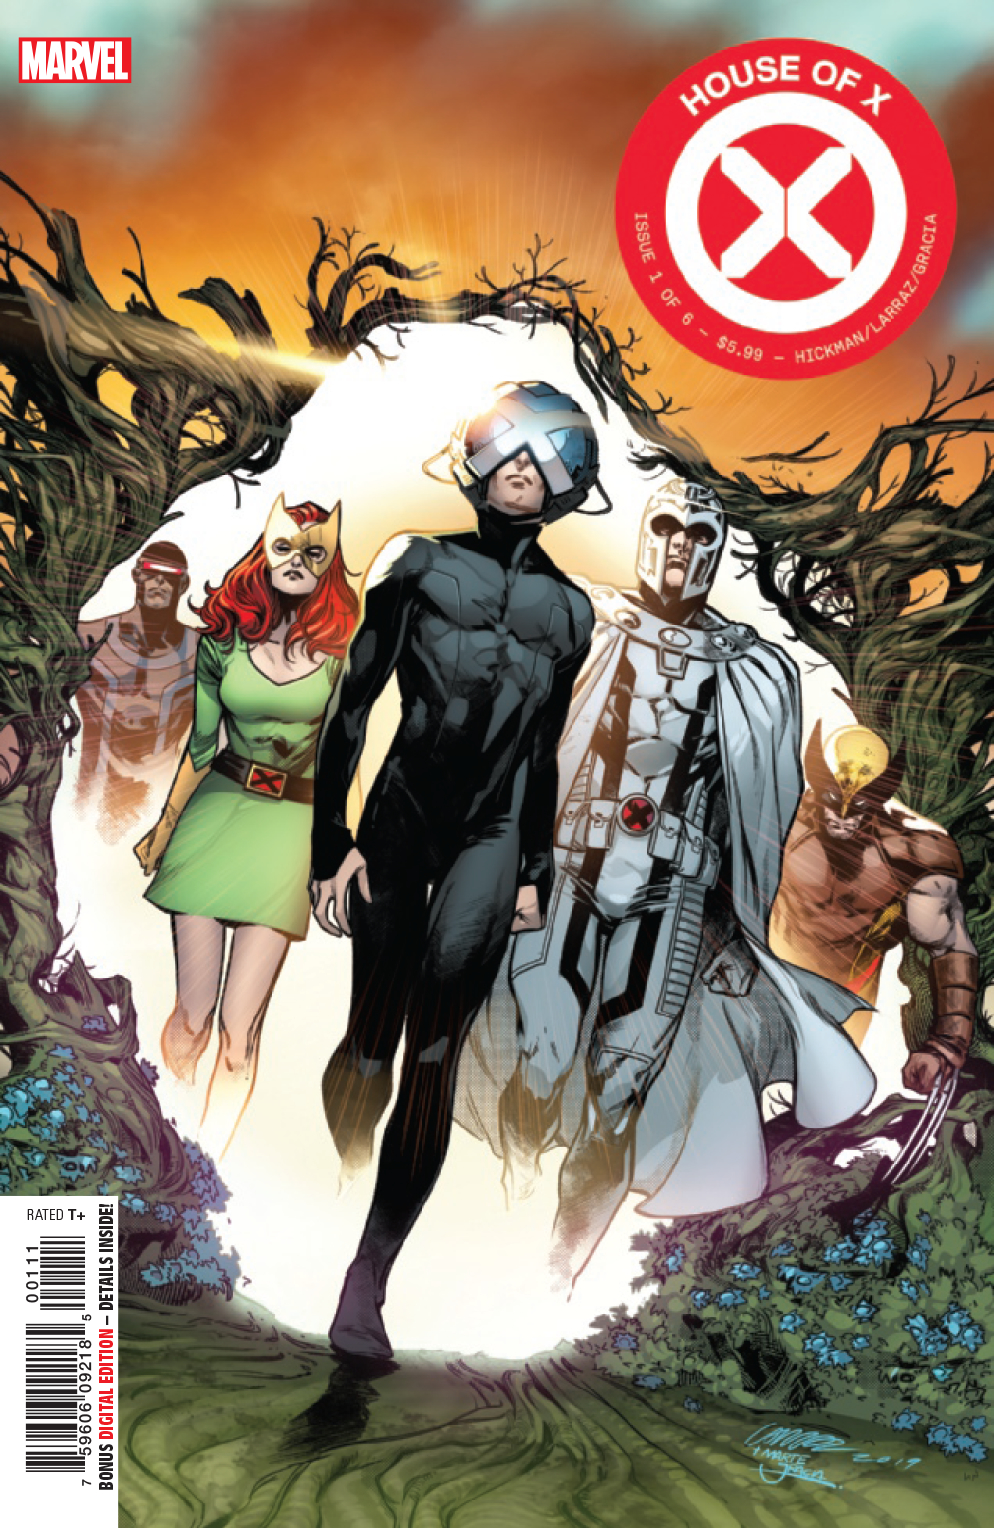 House of X #1  is out now!